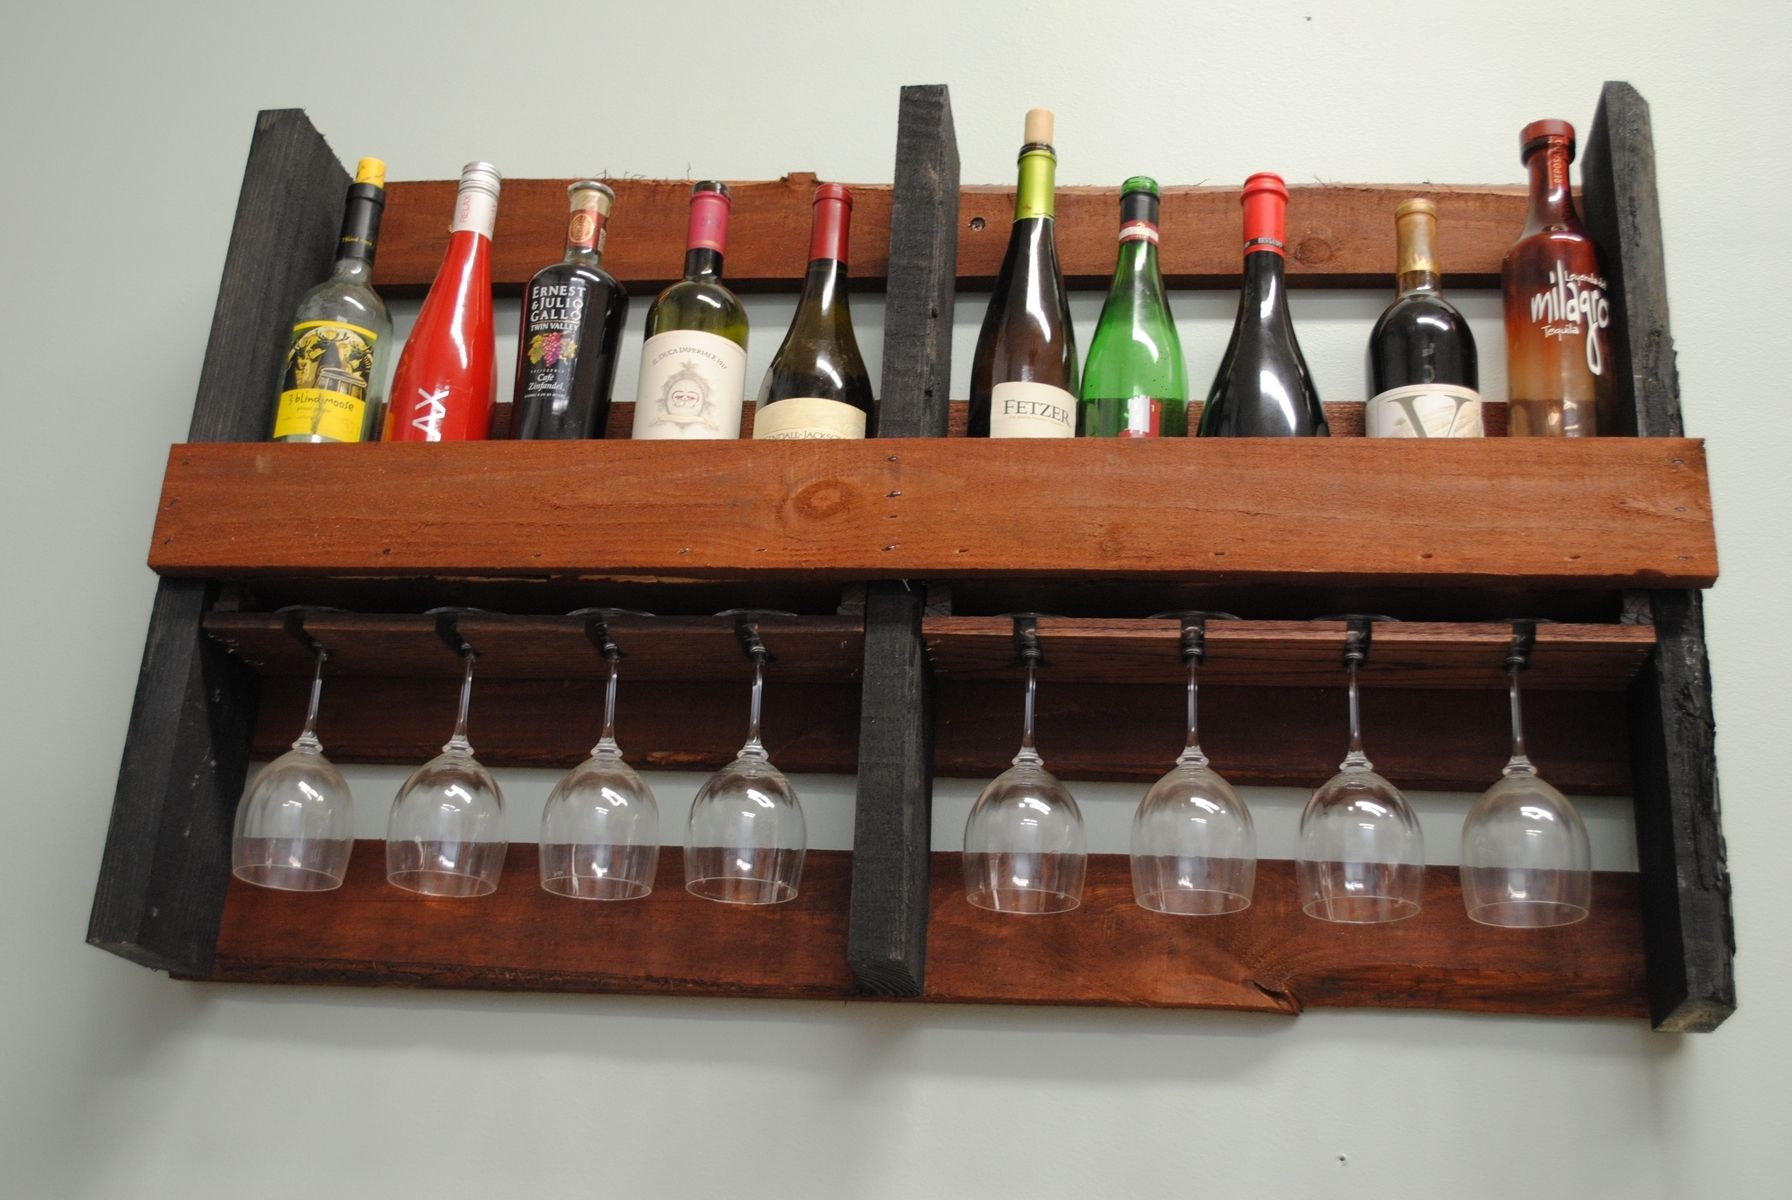 Classic Farmhouse Plans Hand Crafted Wall Mounted Pallet Wine Rack By Shigamasham